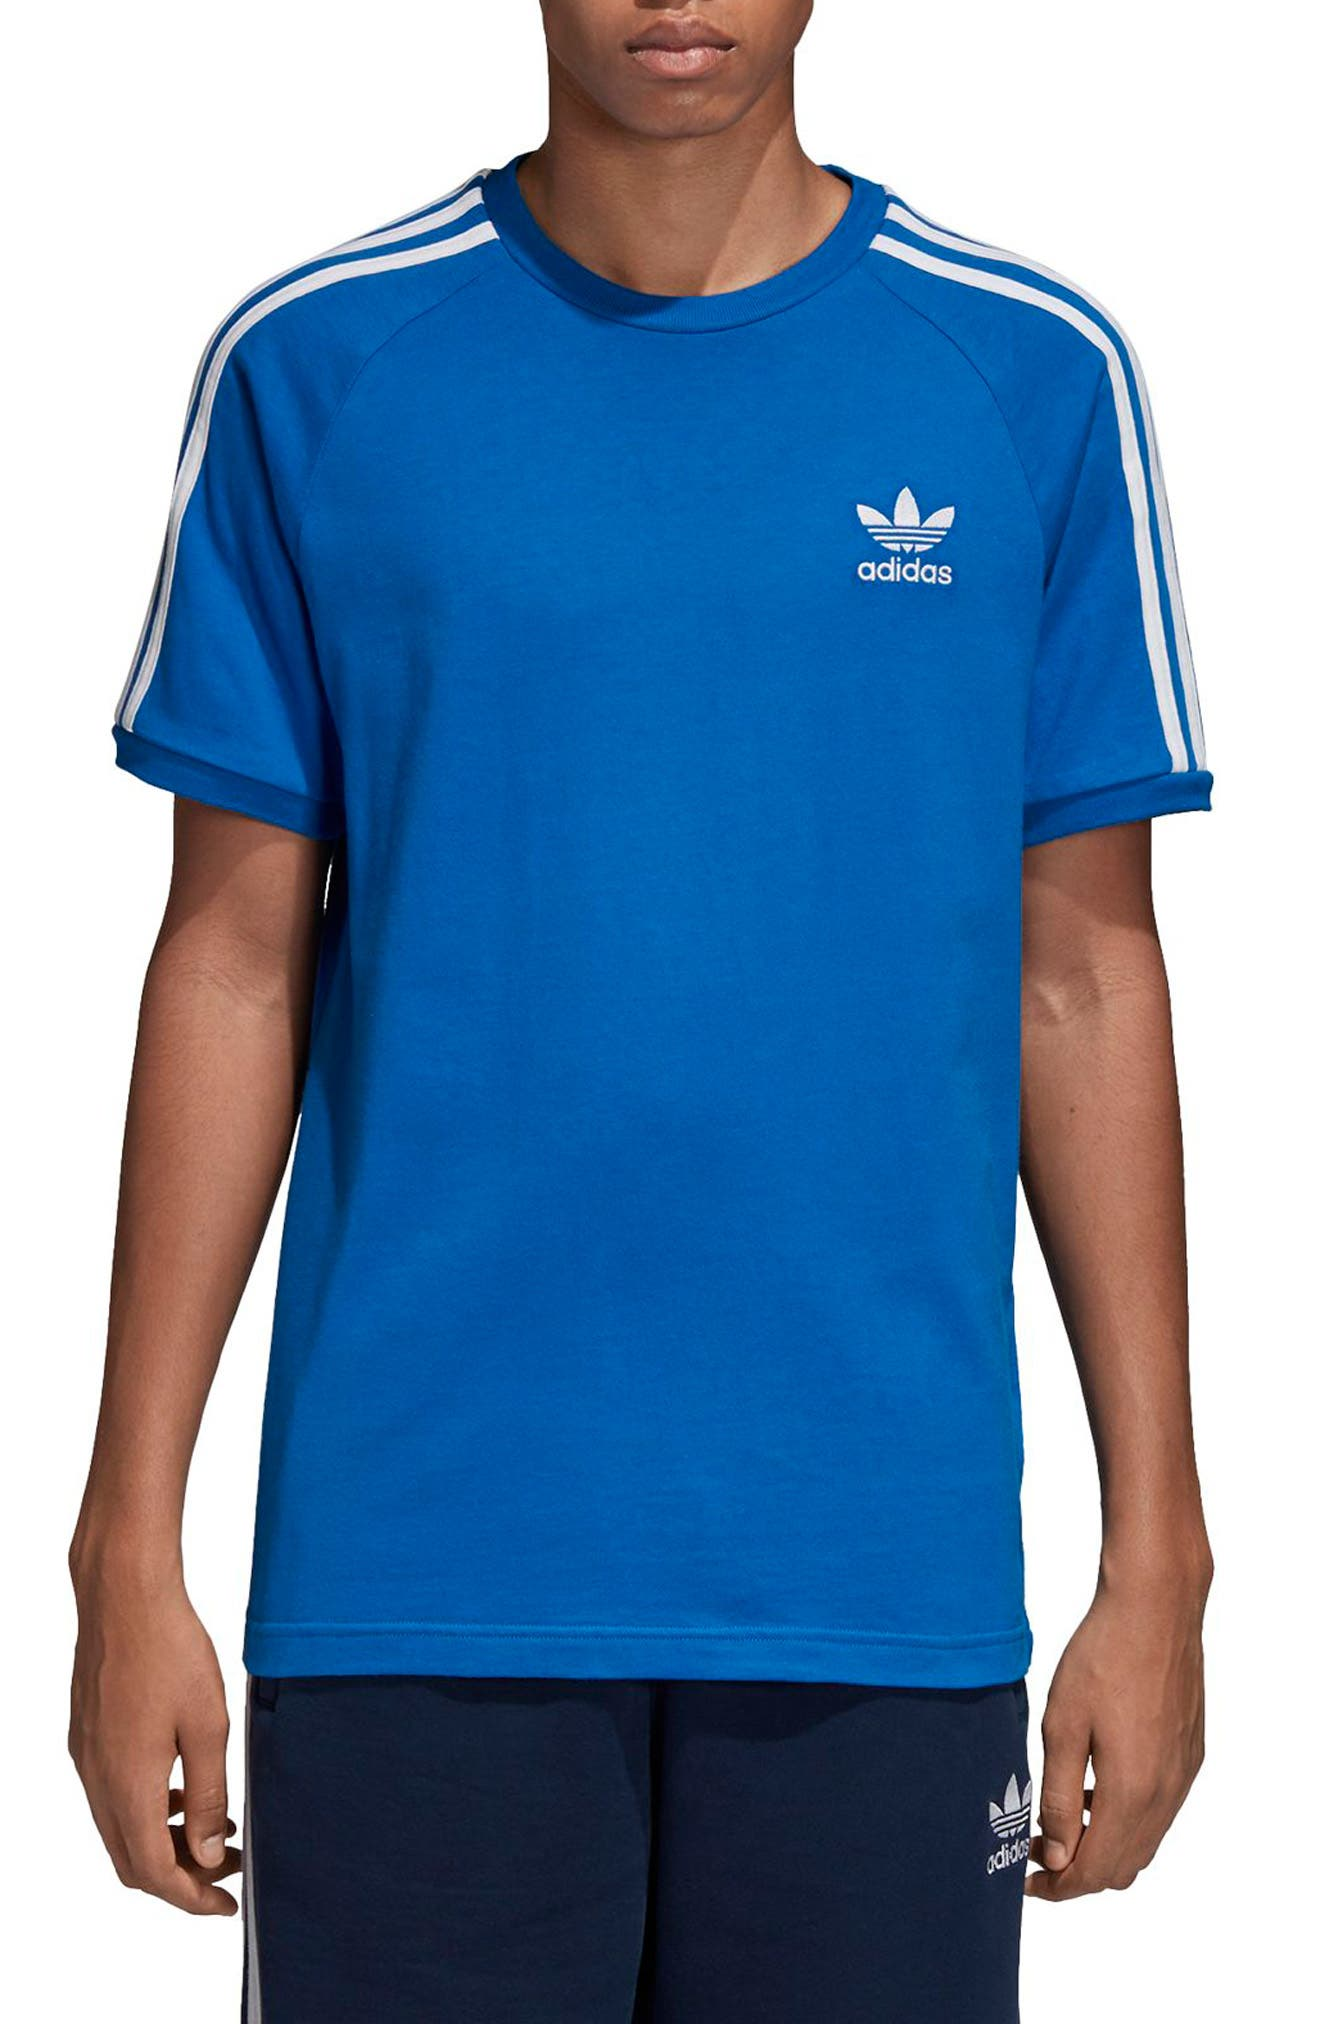 adidas 3-Stripes T-Shirt,                             Main thumbnail 1, color,                             BLUEBIRD